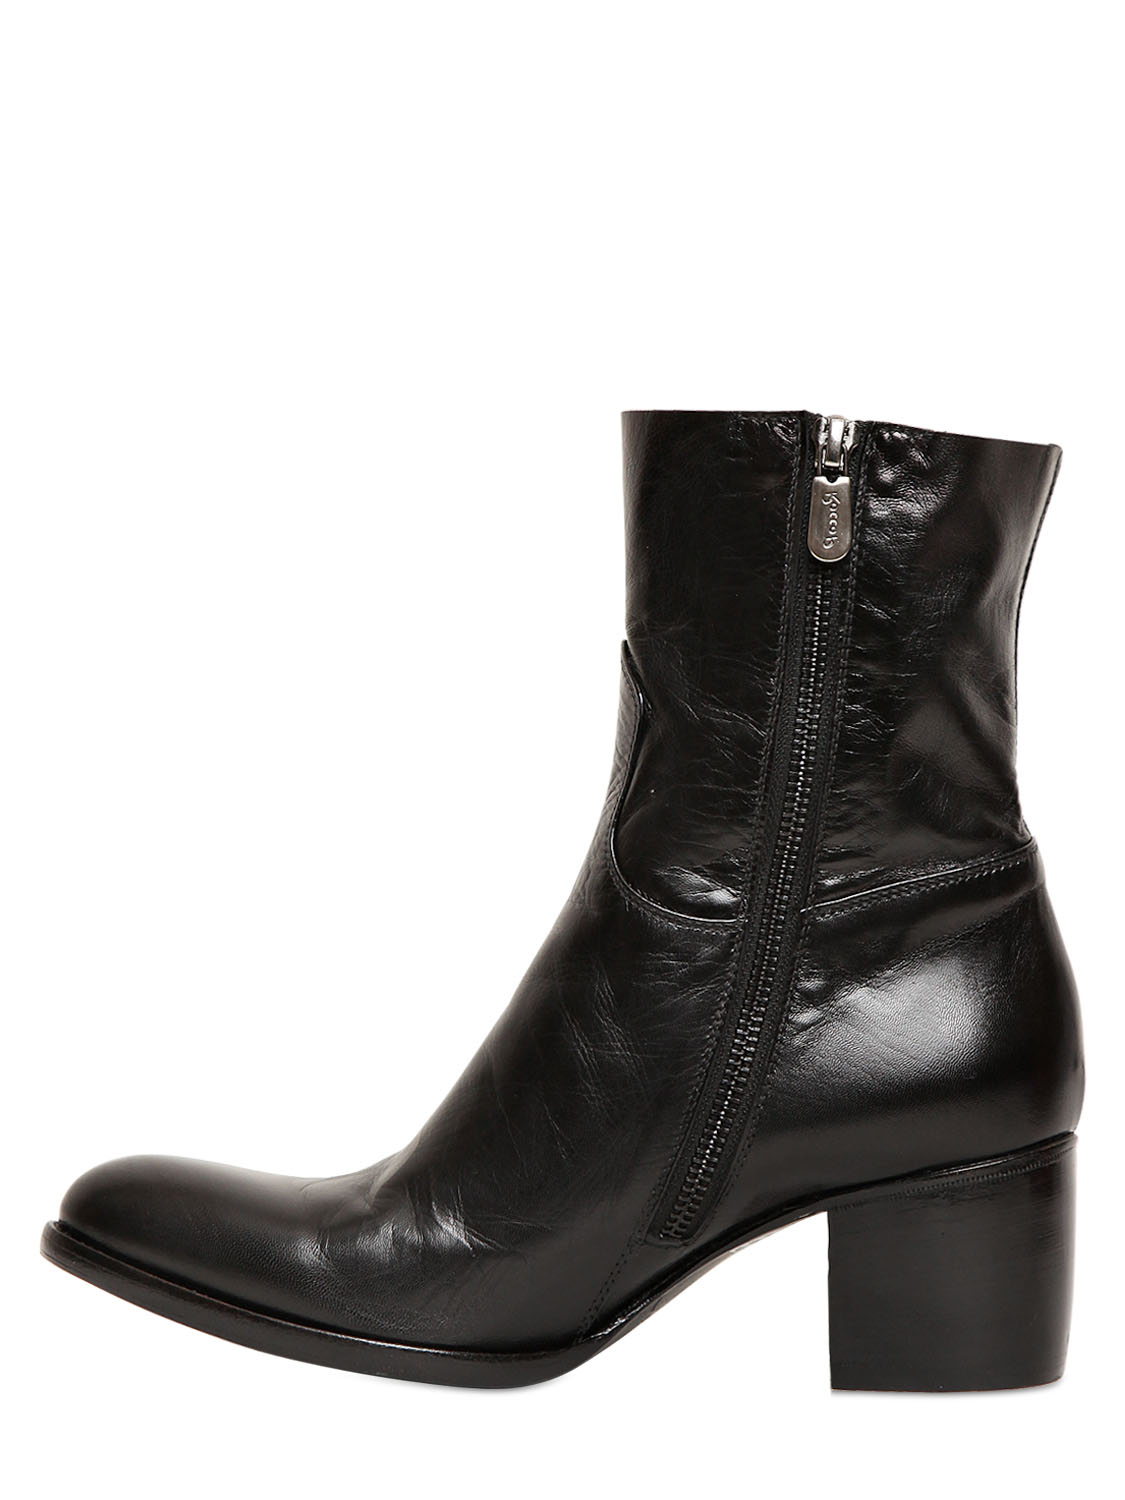 ROCCO P. Back zip ankle boots CgGDBP